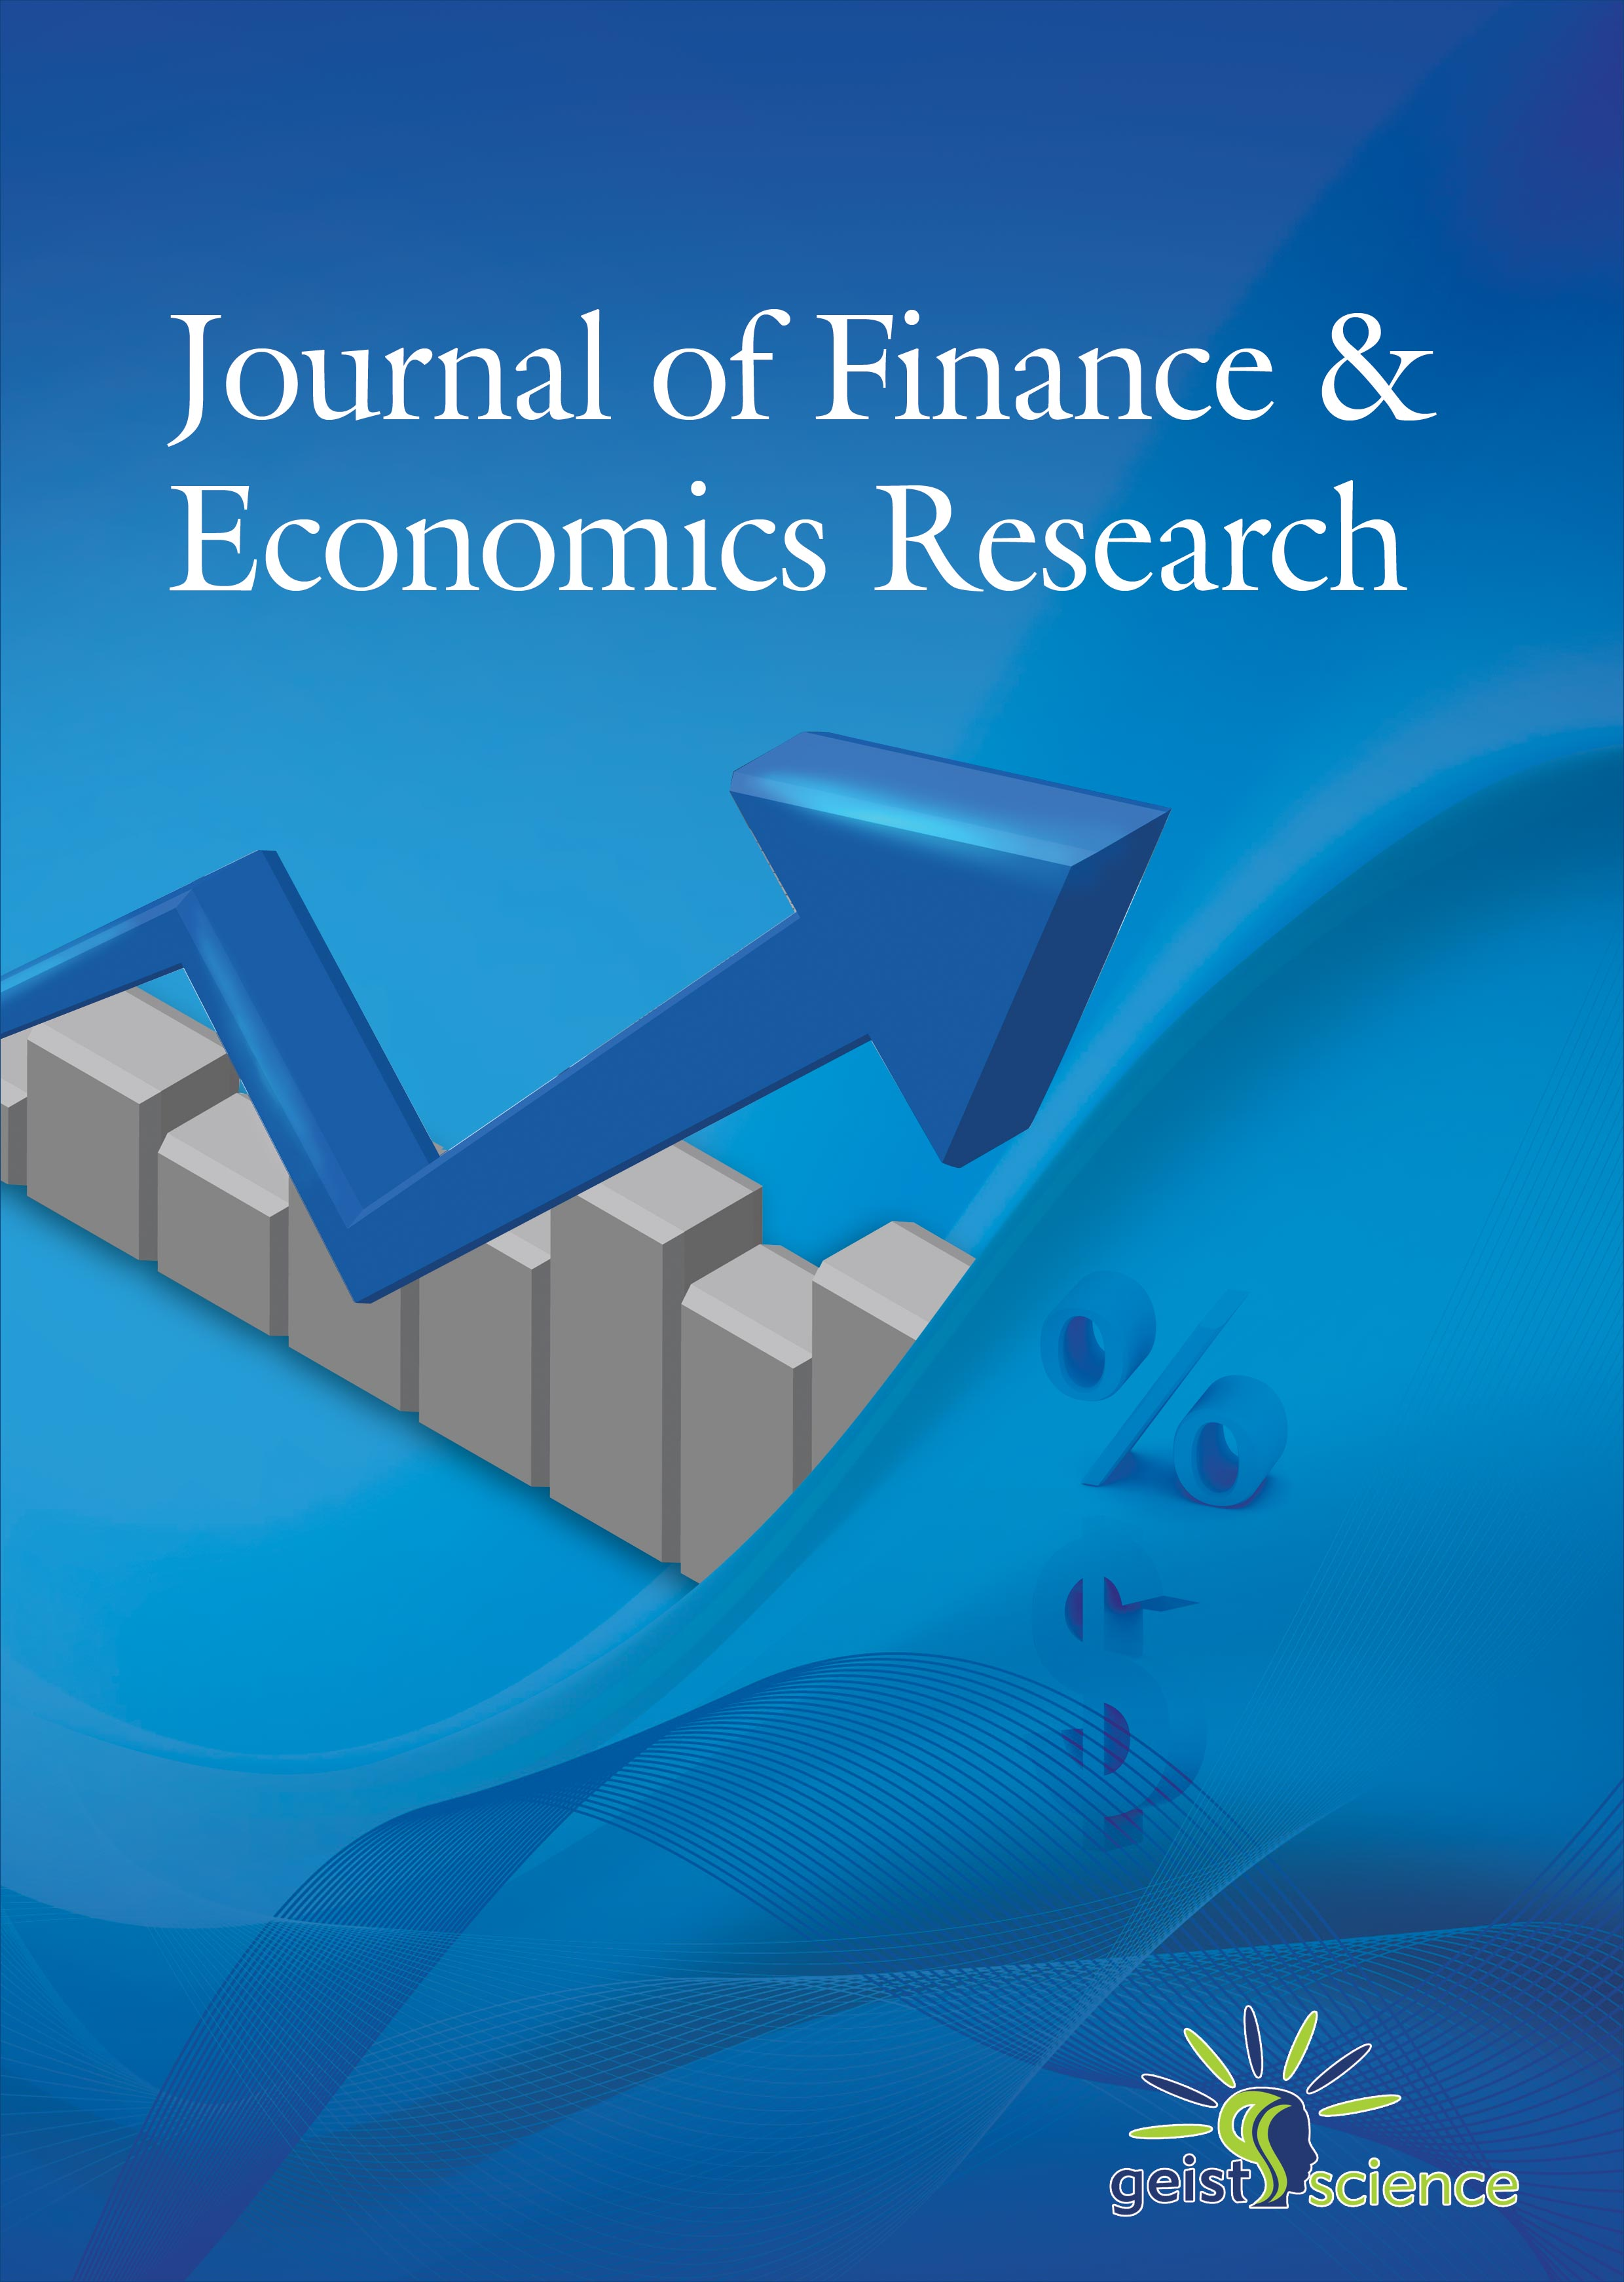 economics research papers online Buying a research papers online has never been simpler order now to get your superb research paper ✍ pro writers ⏰ buy research papers online get your research paper done on time with a personal approach based on 12 customer's feedback economics management dissertation.